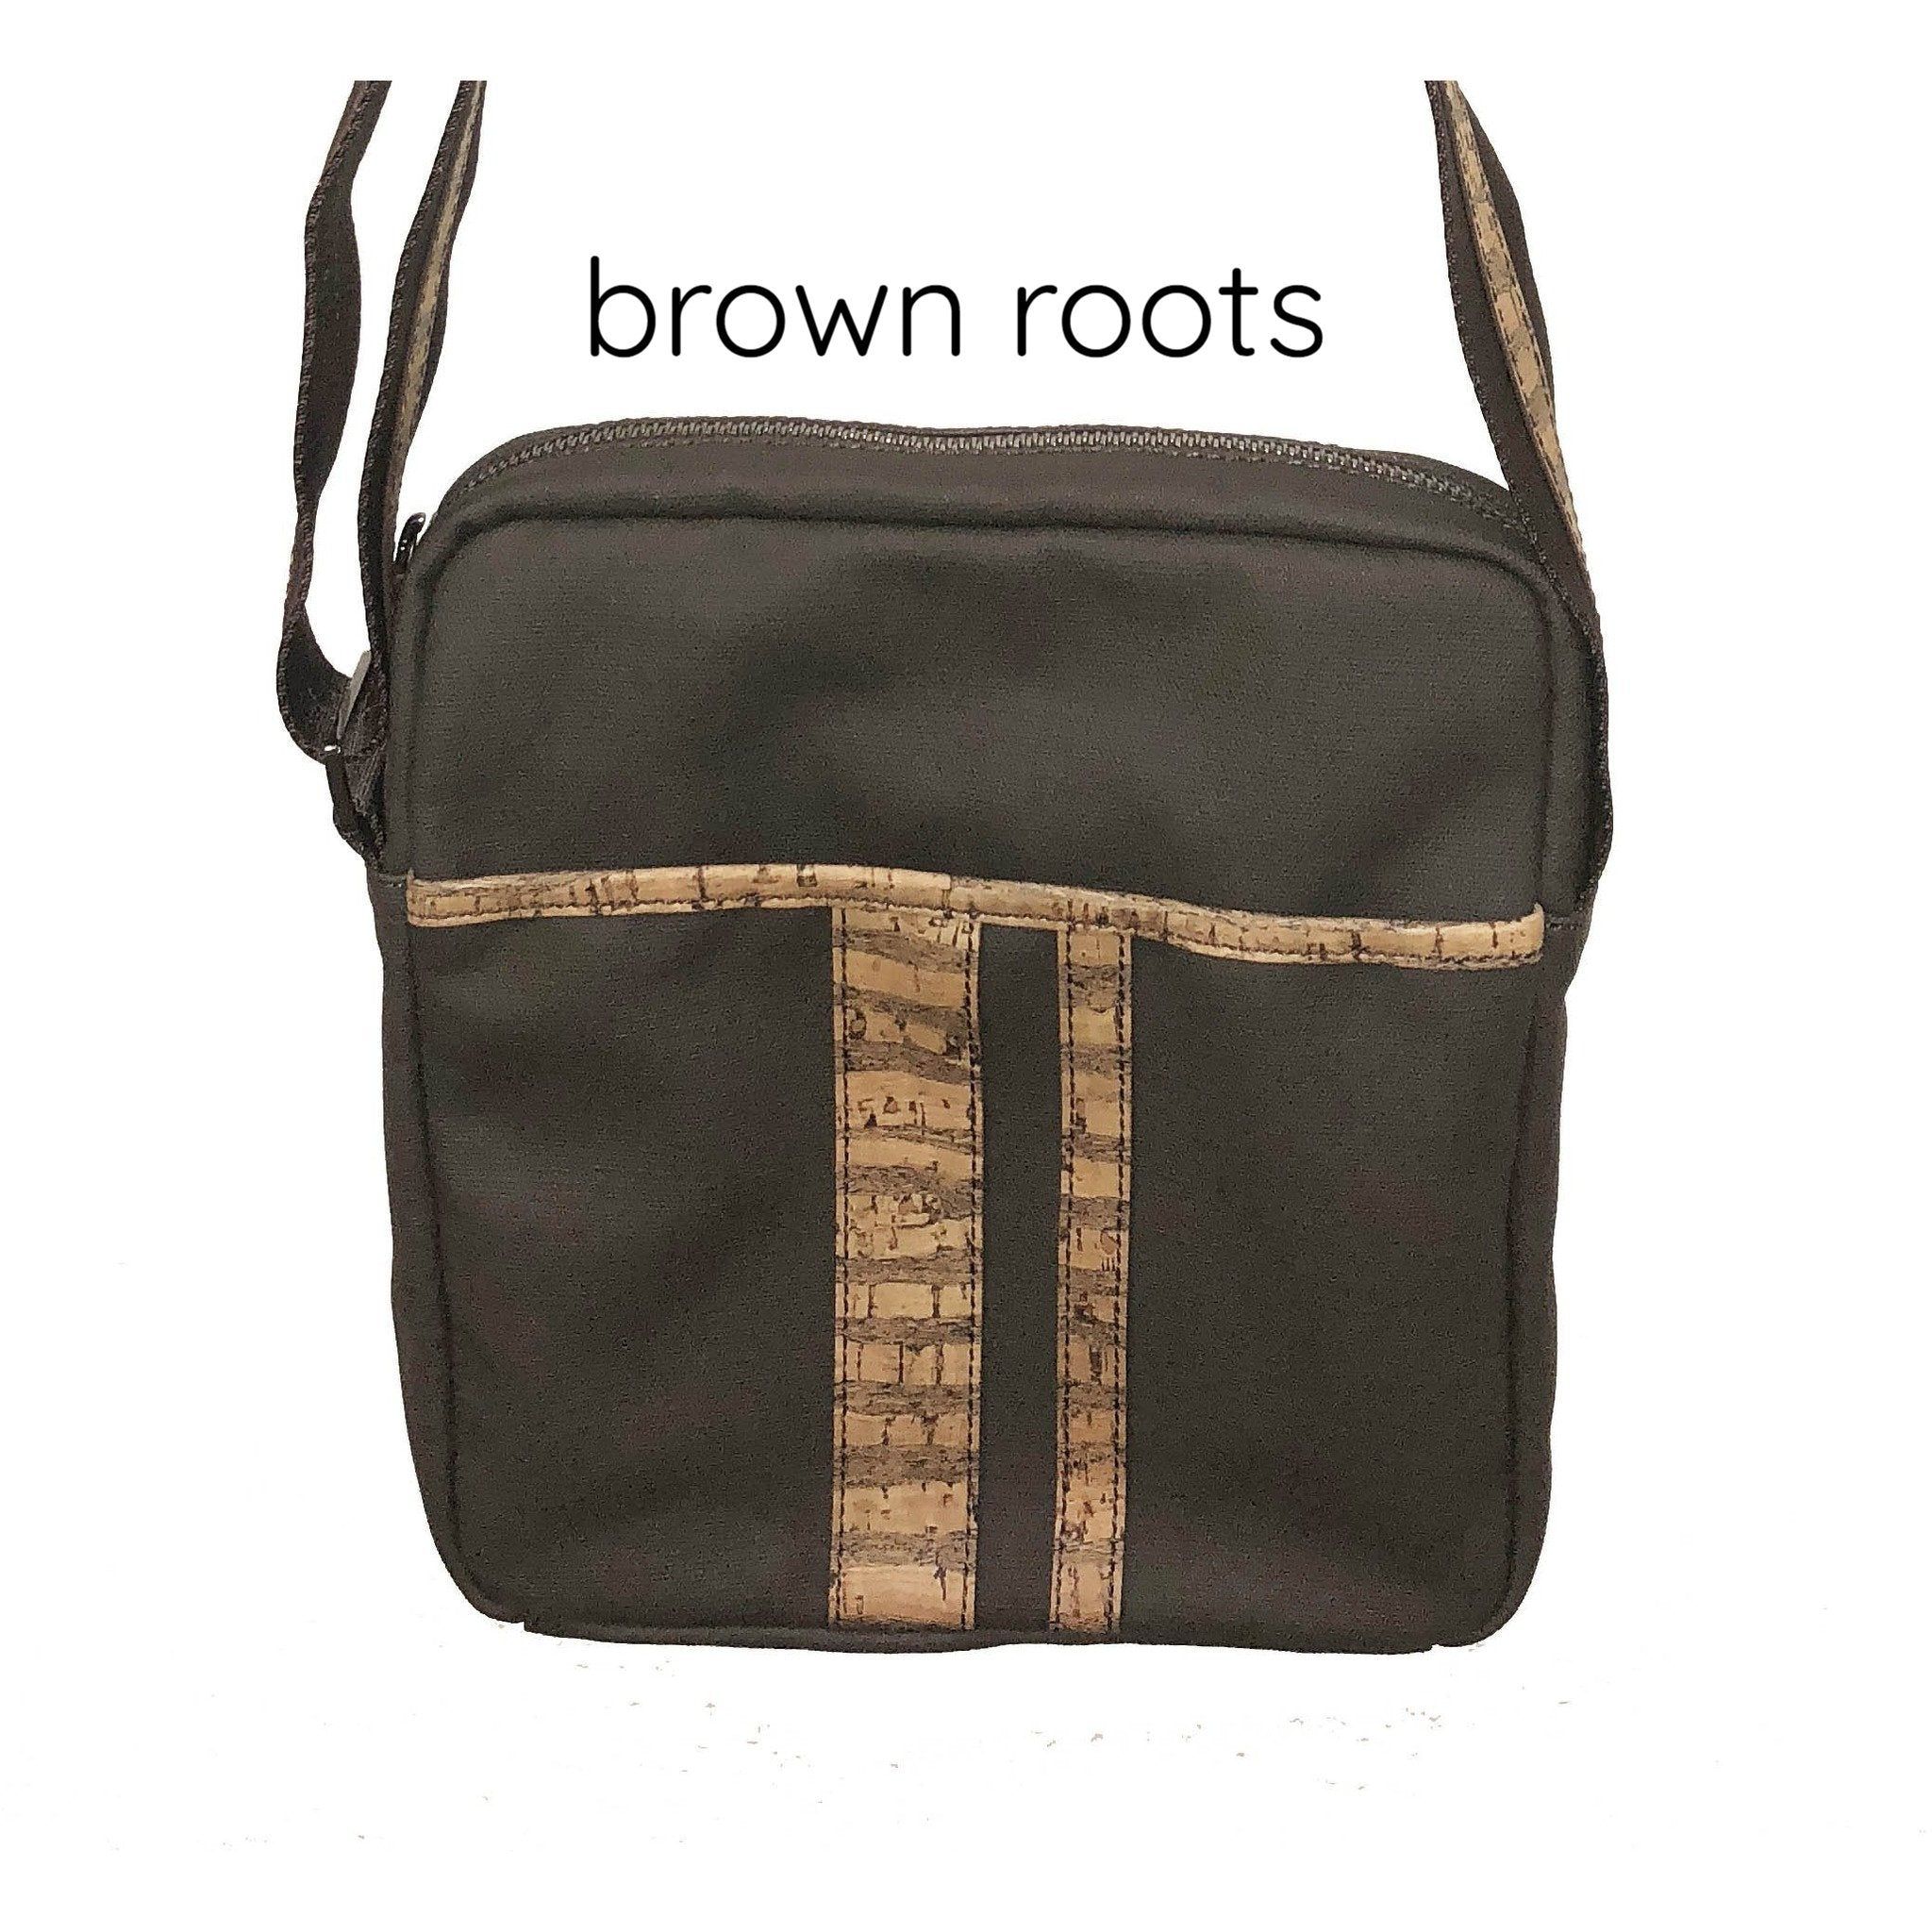 Queork cork the nelson messenger bag brown roots